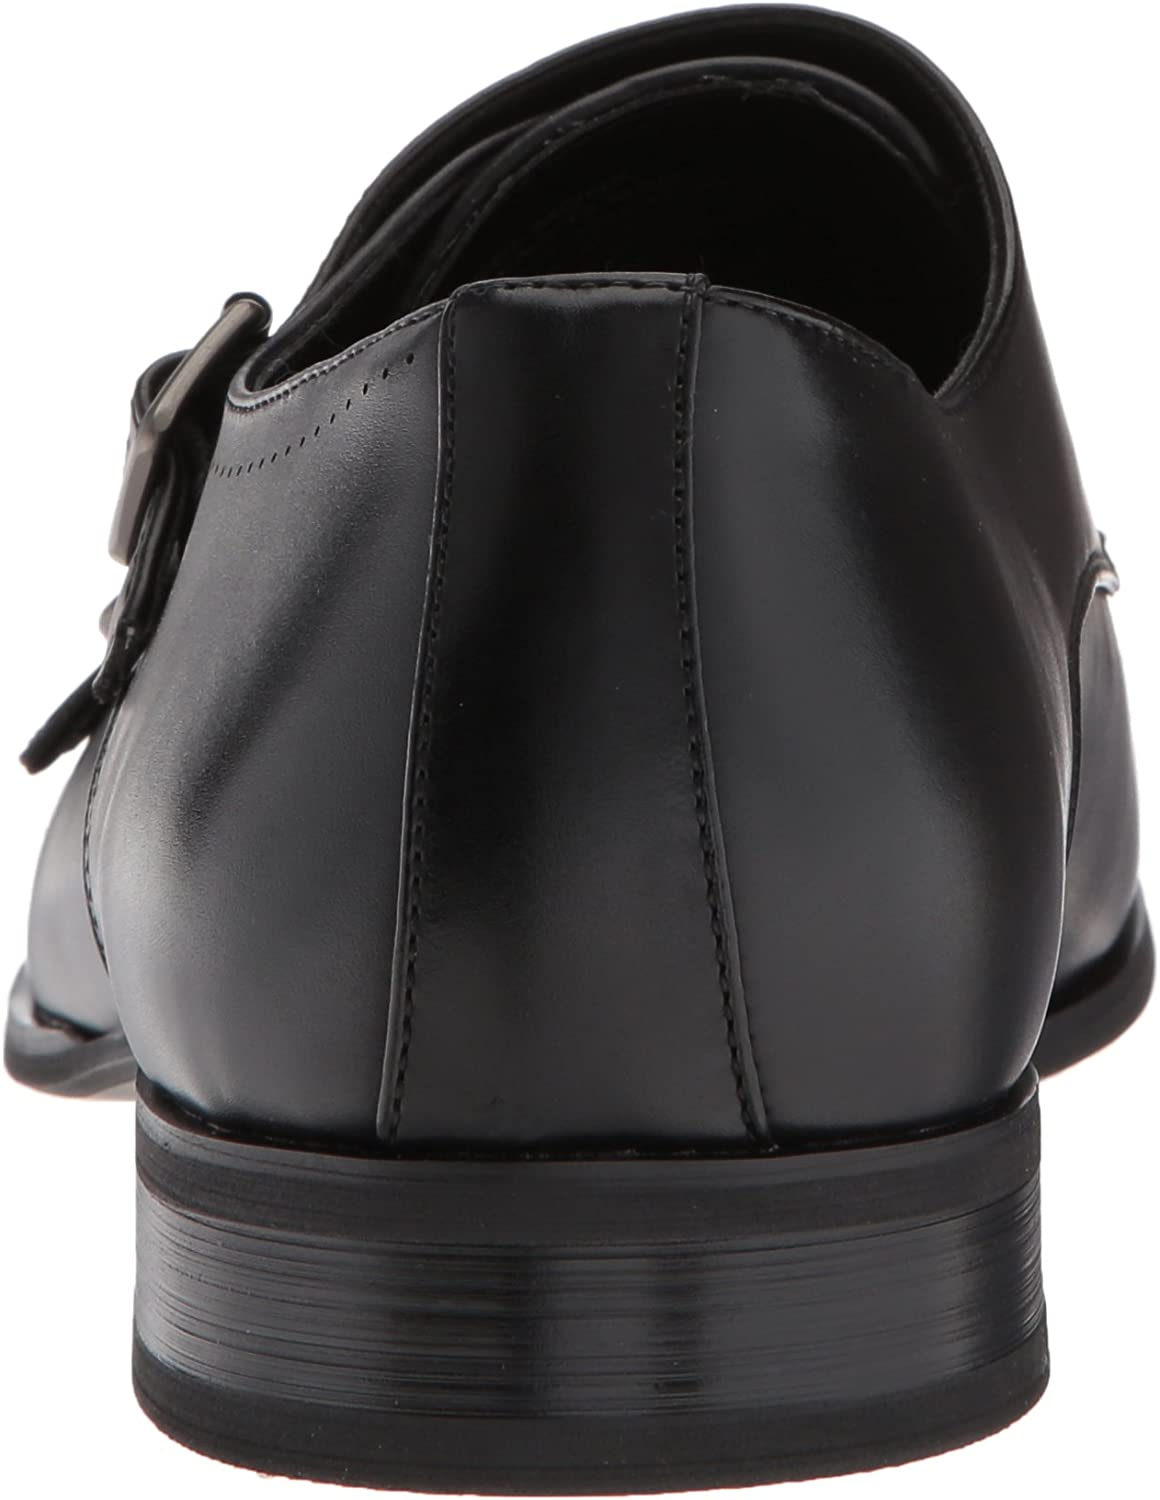 Unlisted by Kenneth Cole Mens EEL Monk-Strap Loafer